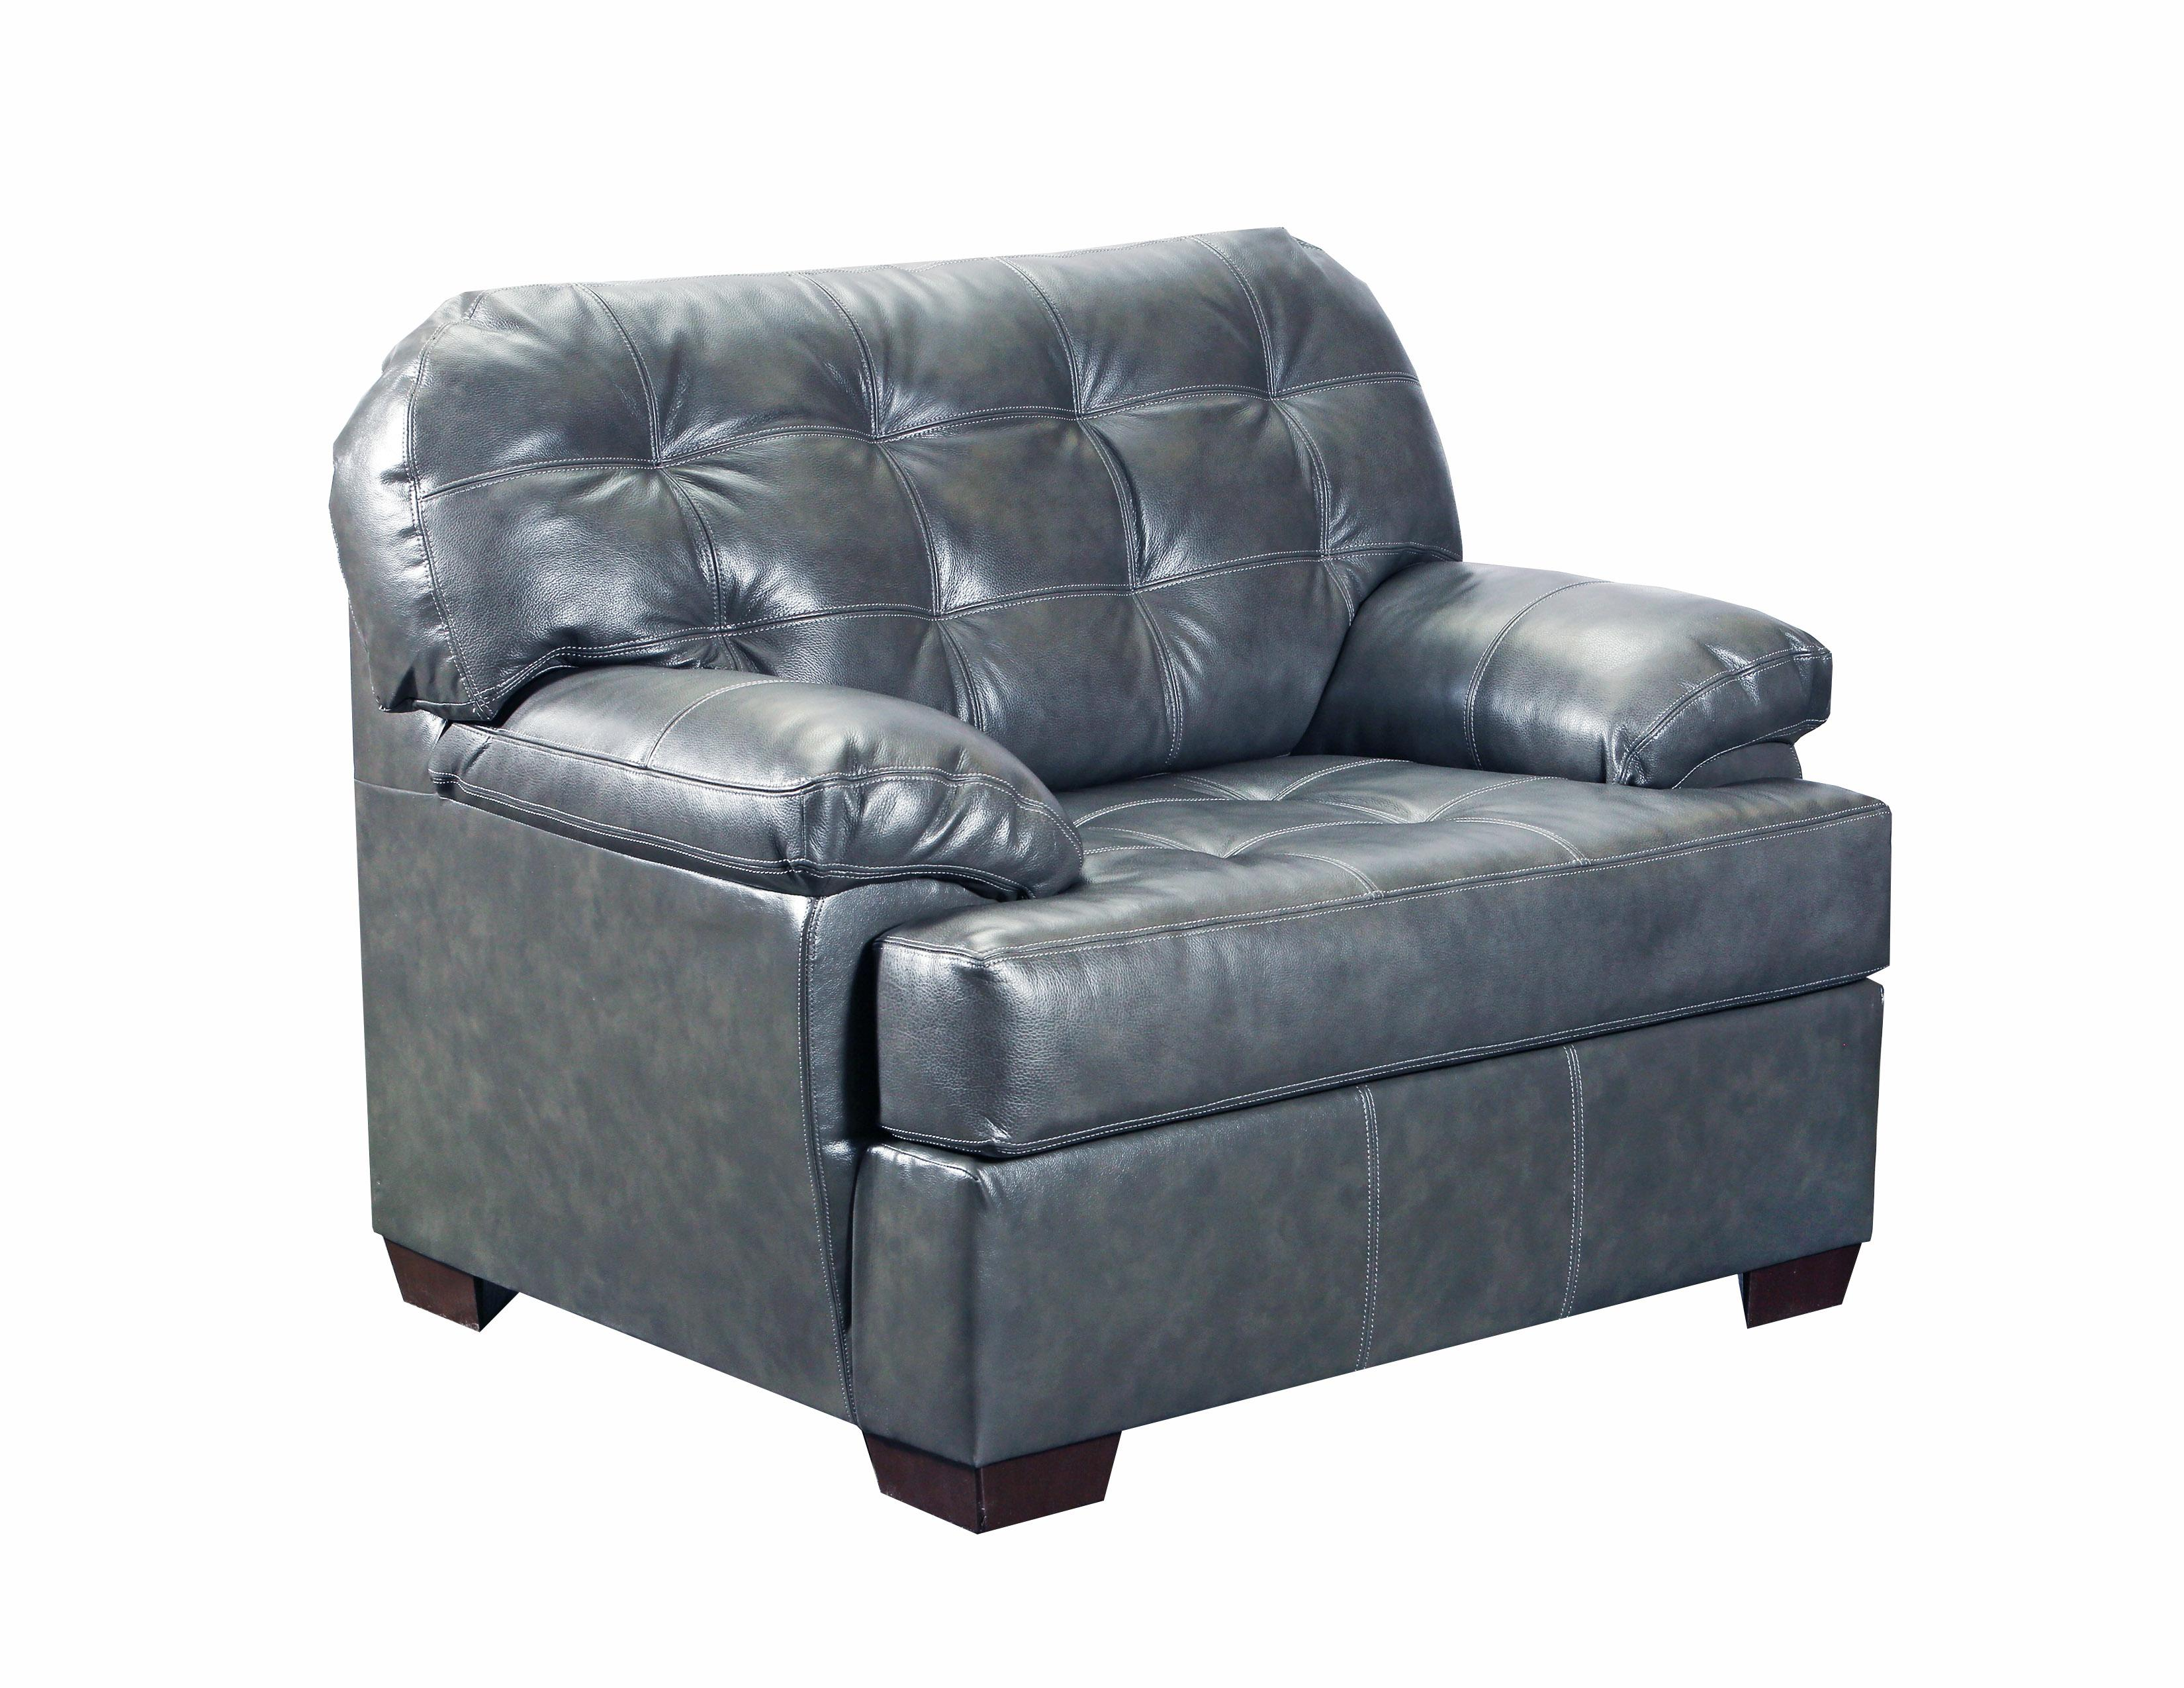 Lane Furniture Soft Touch Fog Leather 2pc Tufted Back